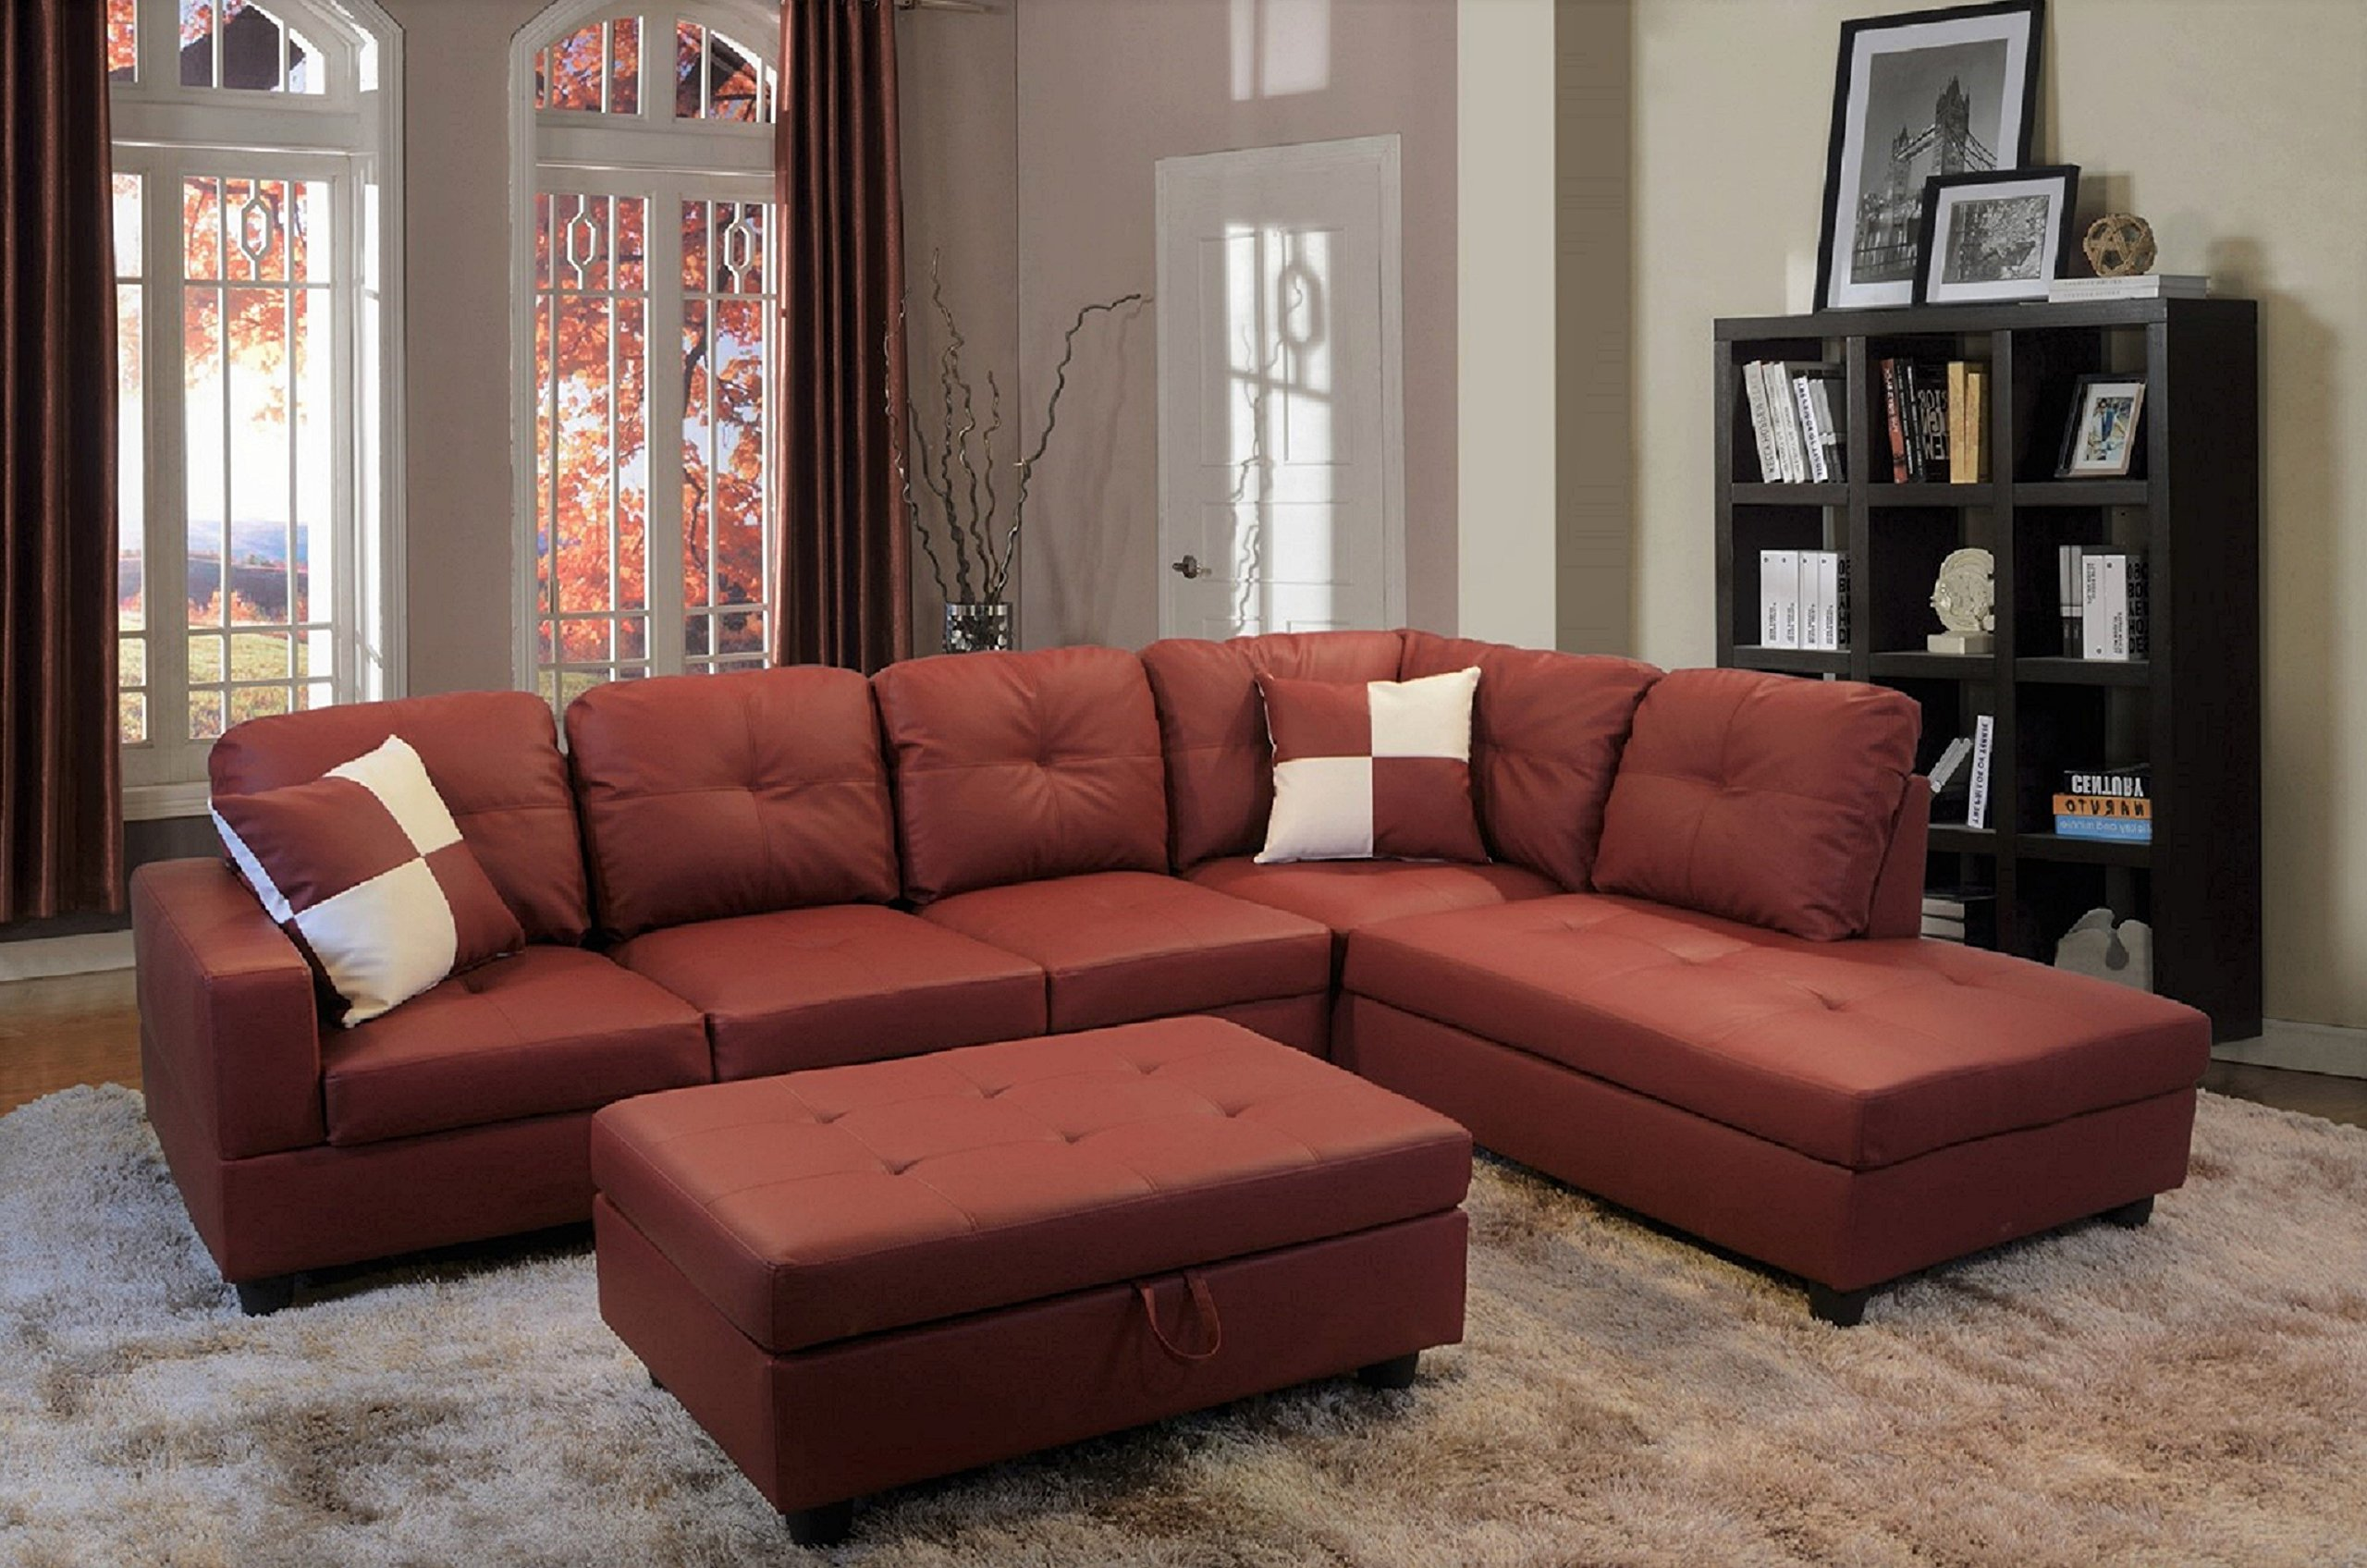 Details about Golden Coast Furniture Sectional Sofa Set (Burgundy,Right  Facing)